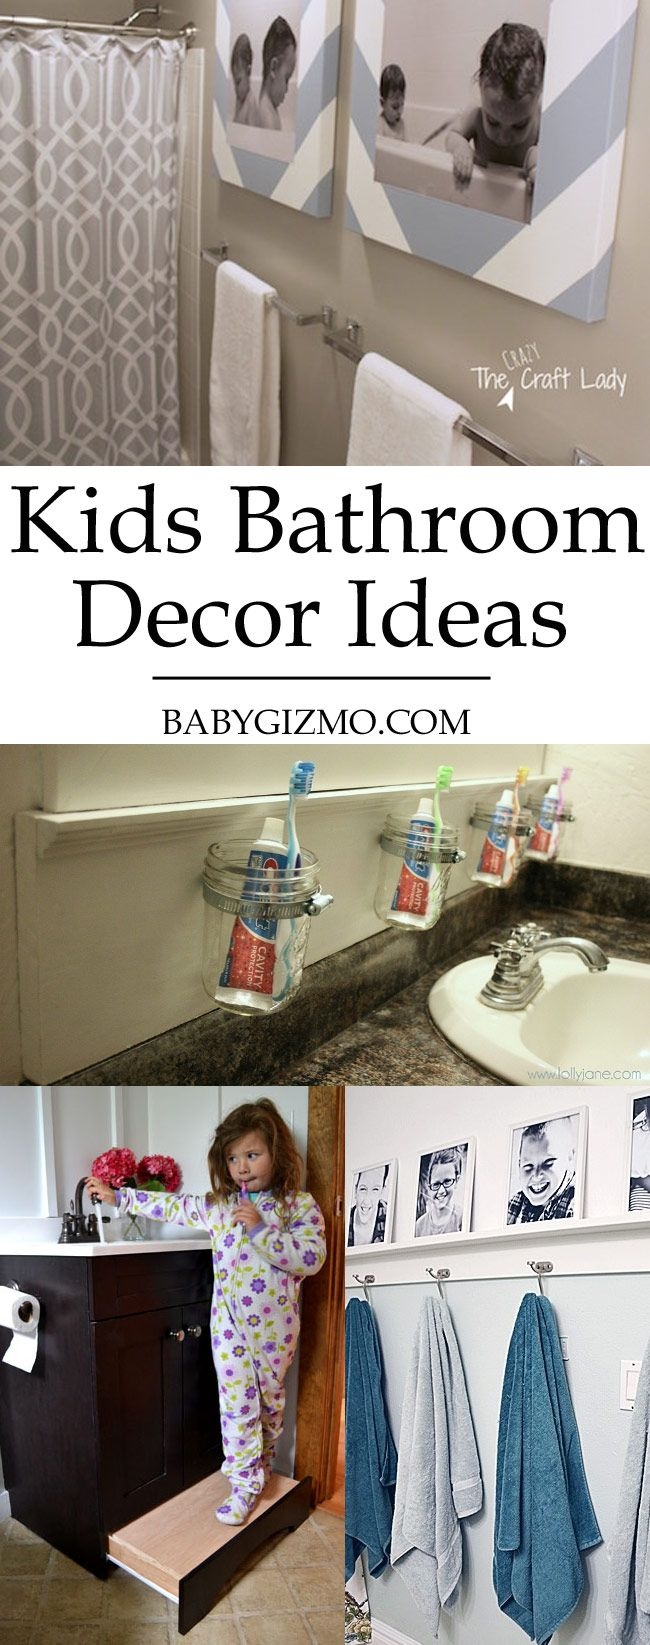 looking for some quick easy cute ways to decorate your kidsu0027 bathroom here are 7 adorable kids bathroom decor ideas youu0027ll love